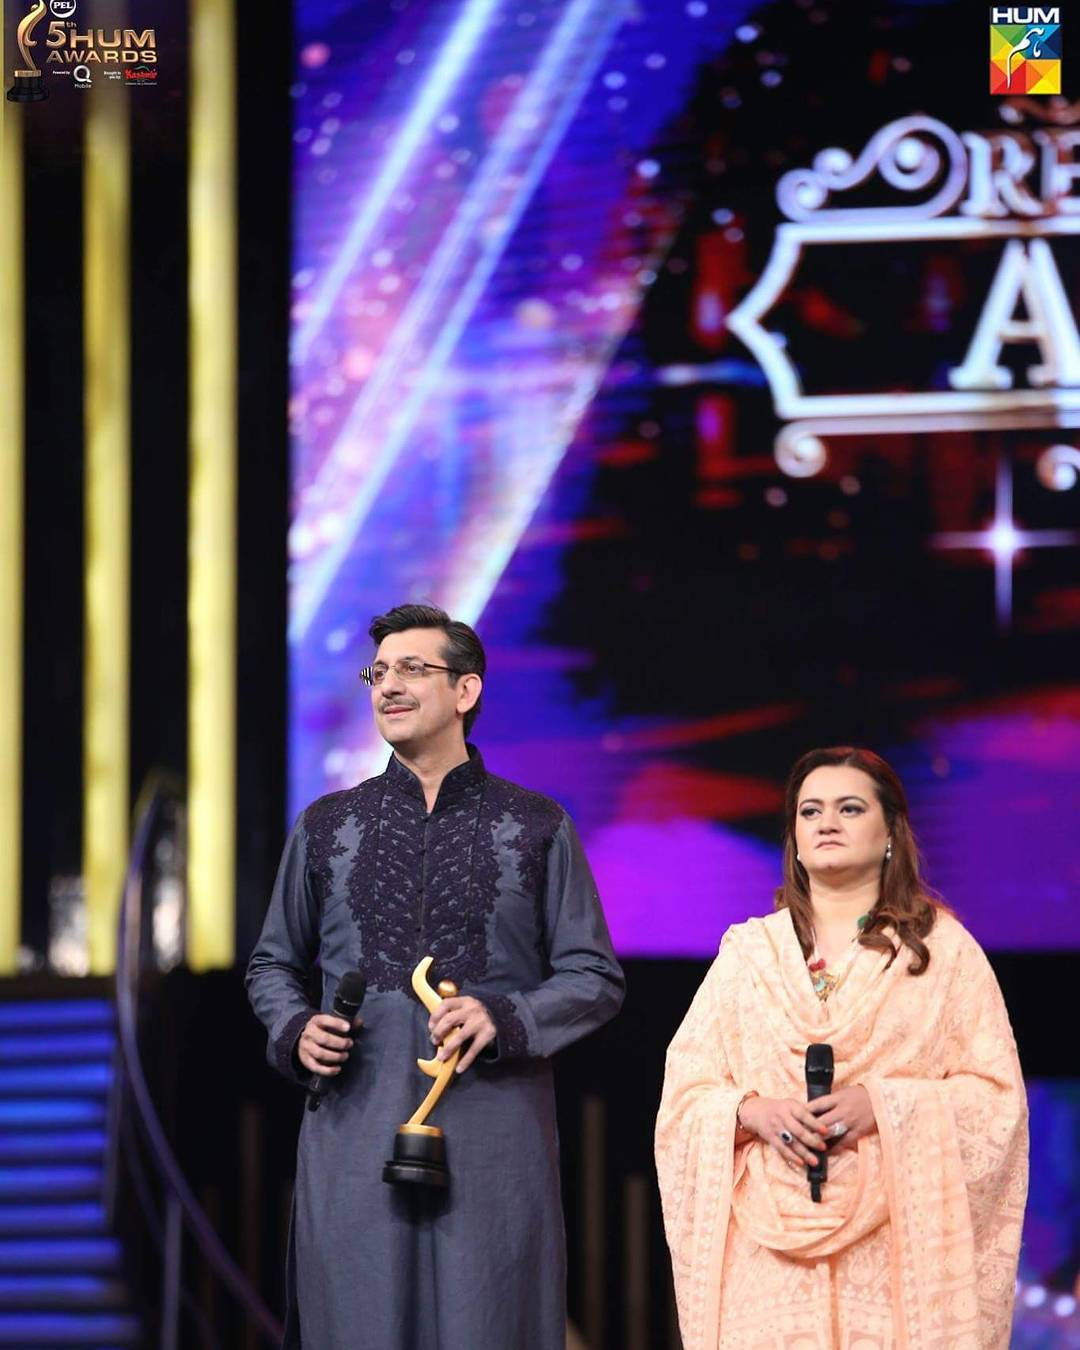 PEL 5th Hum awards 2017 (1)